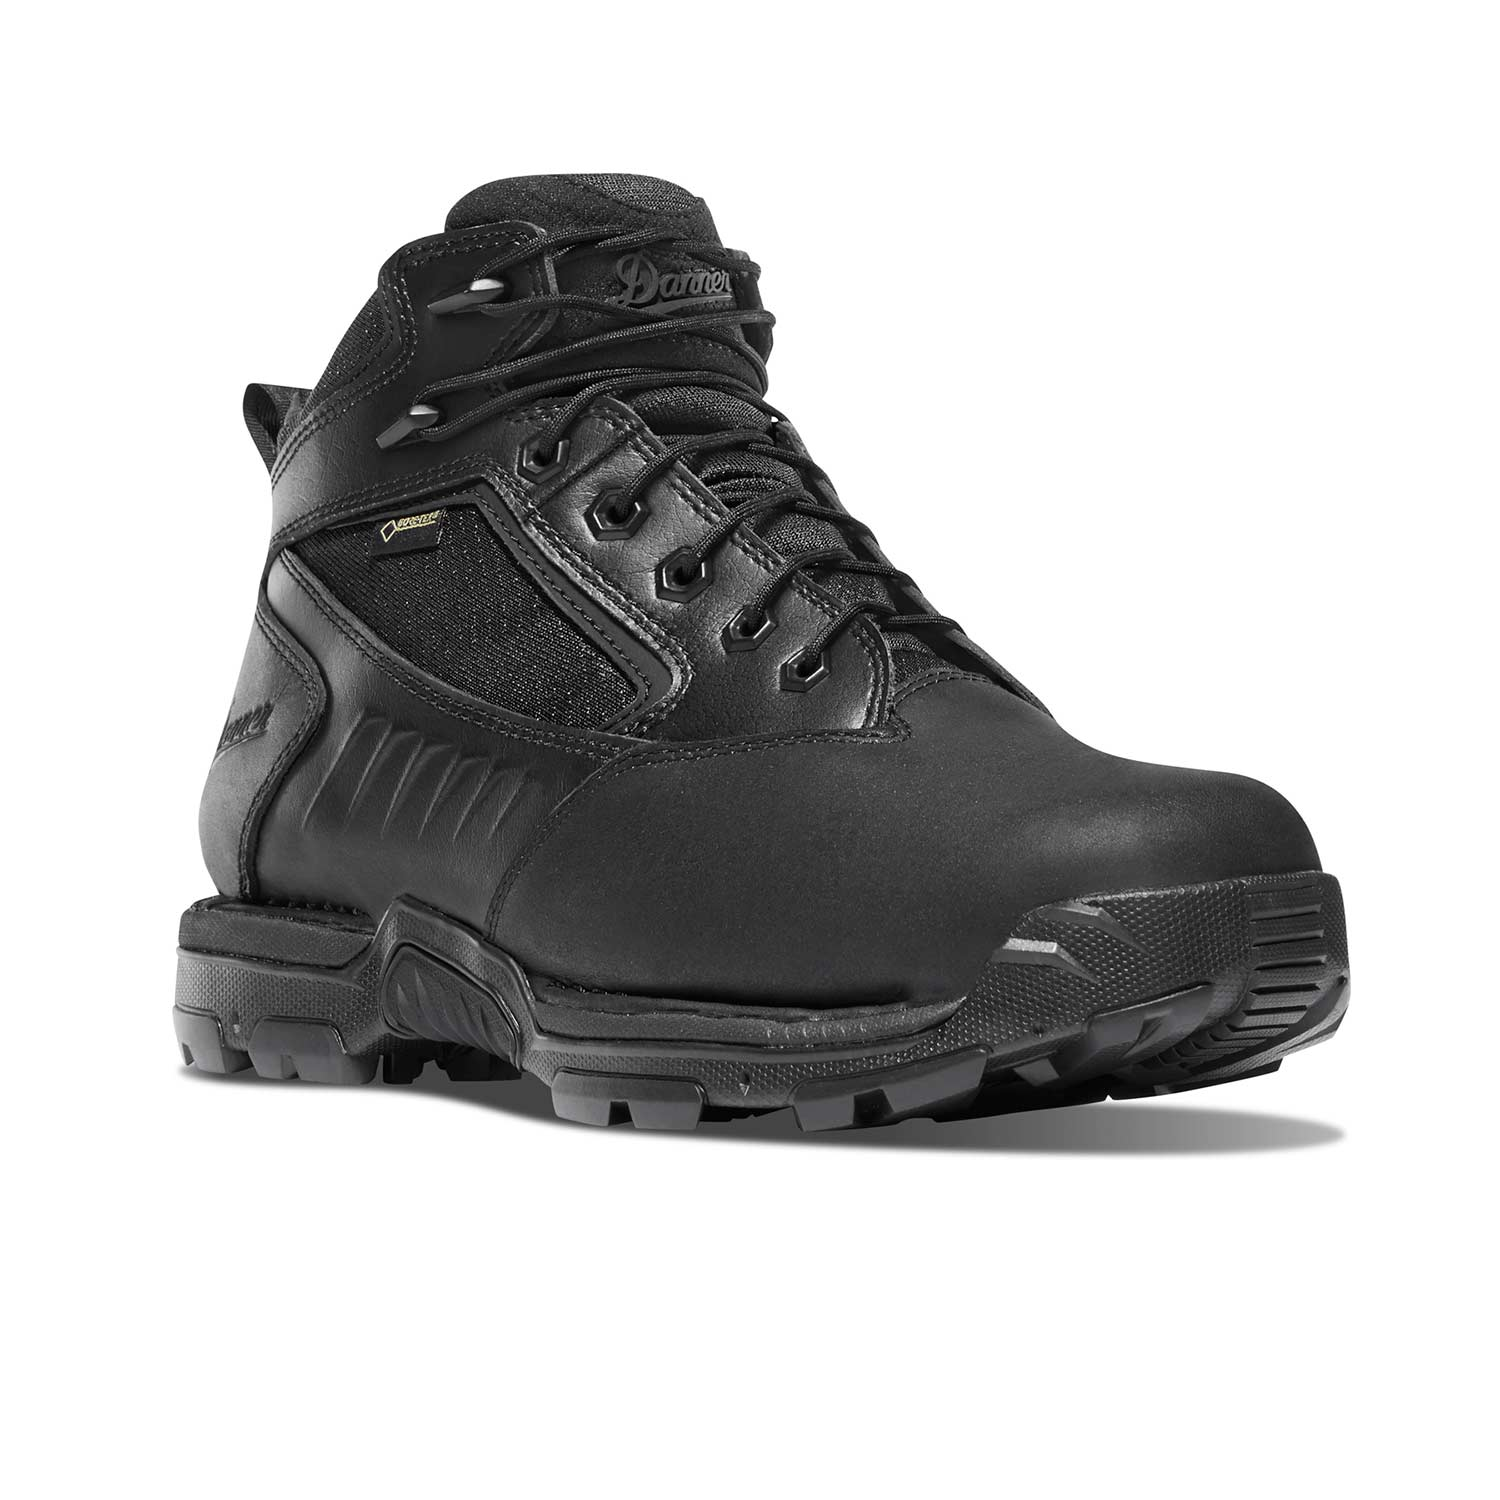 "Danner Striker Bolt 4.5"" Quarter Boot"